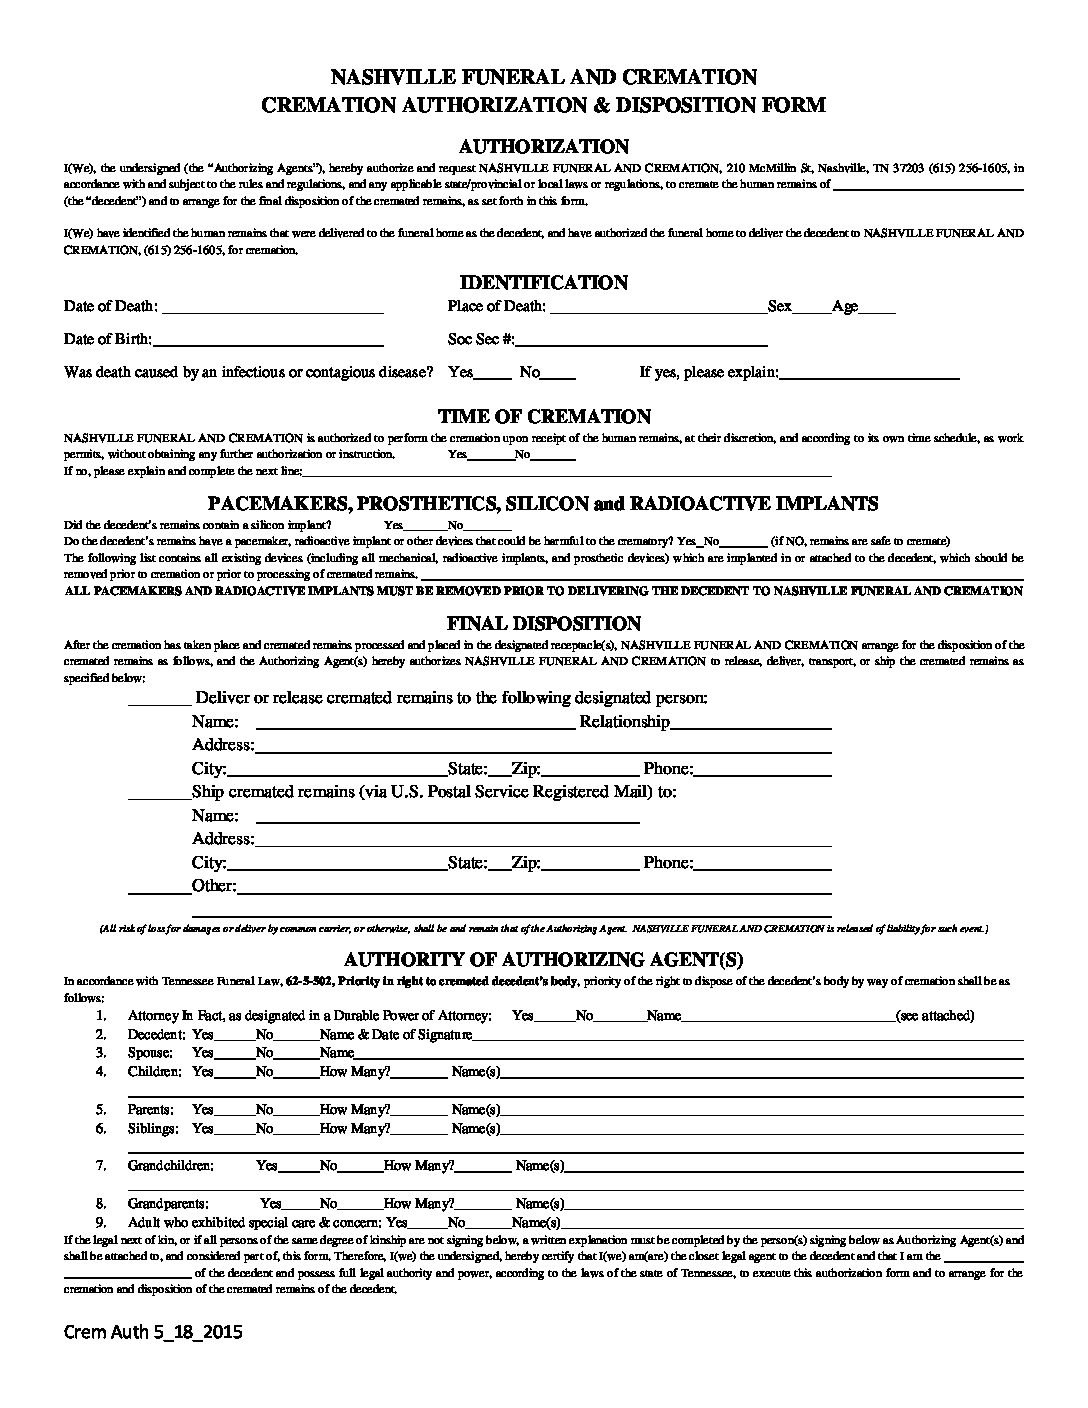 Download our Cremation Authorization form - Nashville Funeral and Cremation